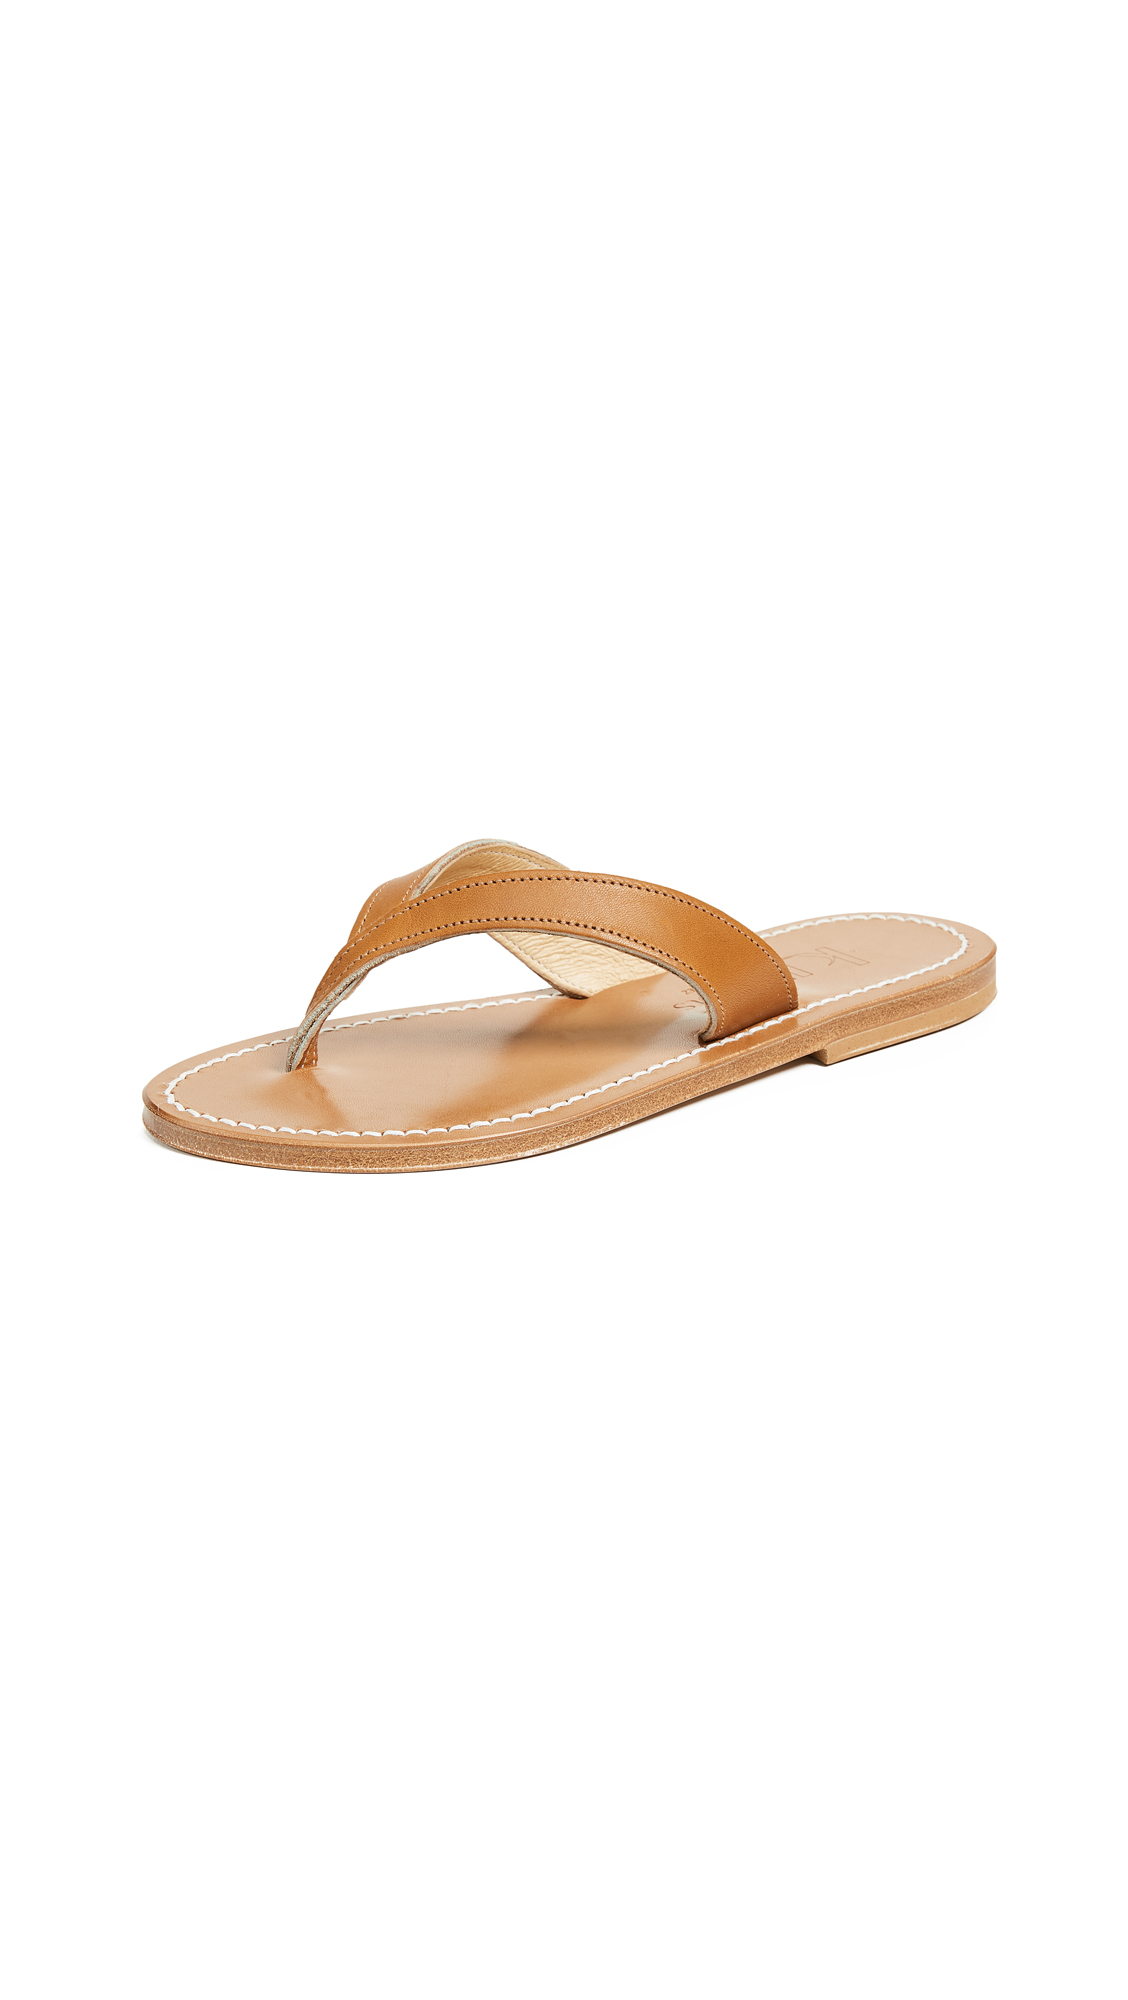 K. Jacques Popee Thong Sandals - Pul Naturel